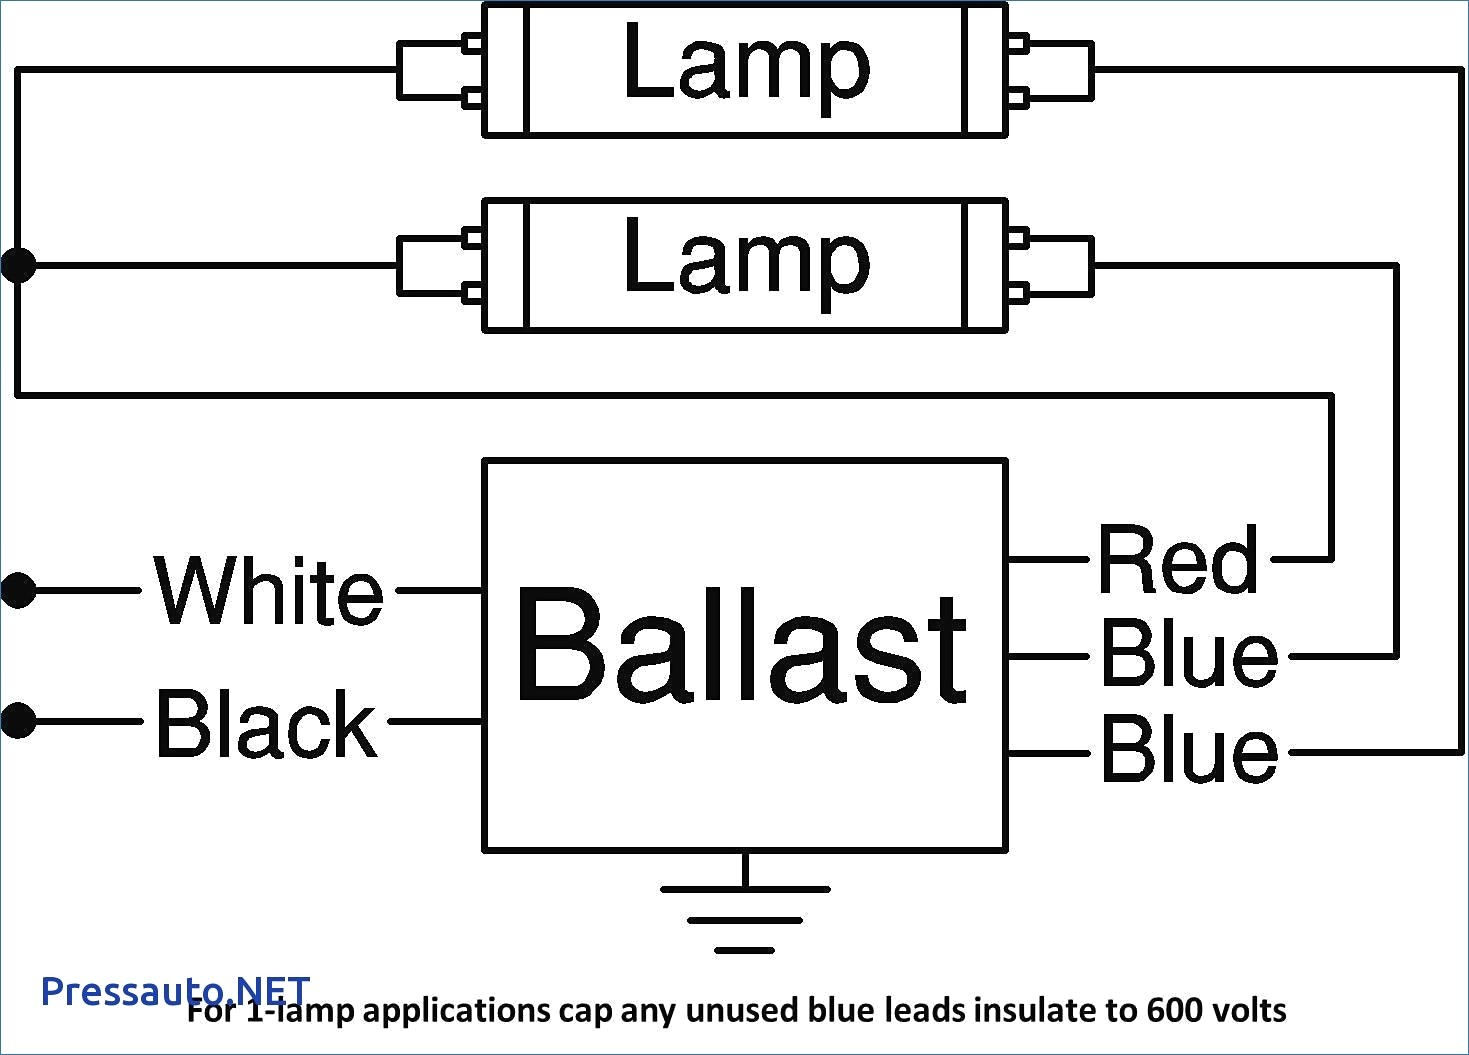 2 Lamp Ballast Wiring Diagram Unique | Wiring Diagram Image